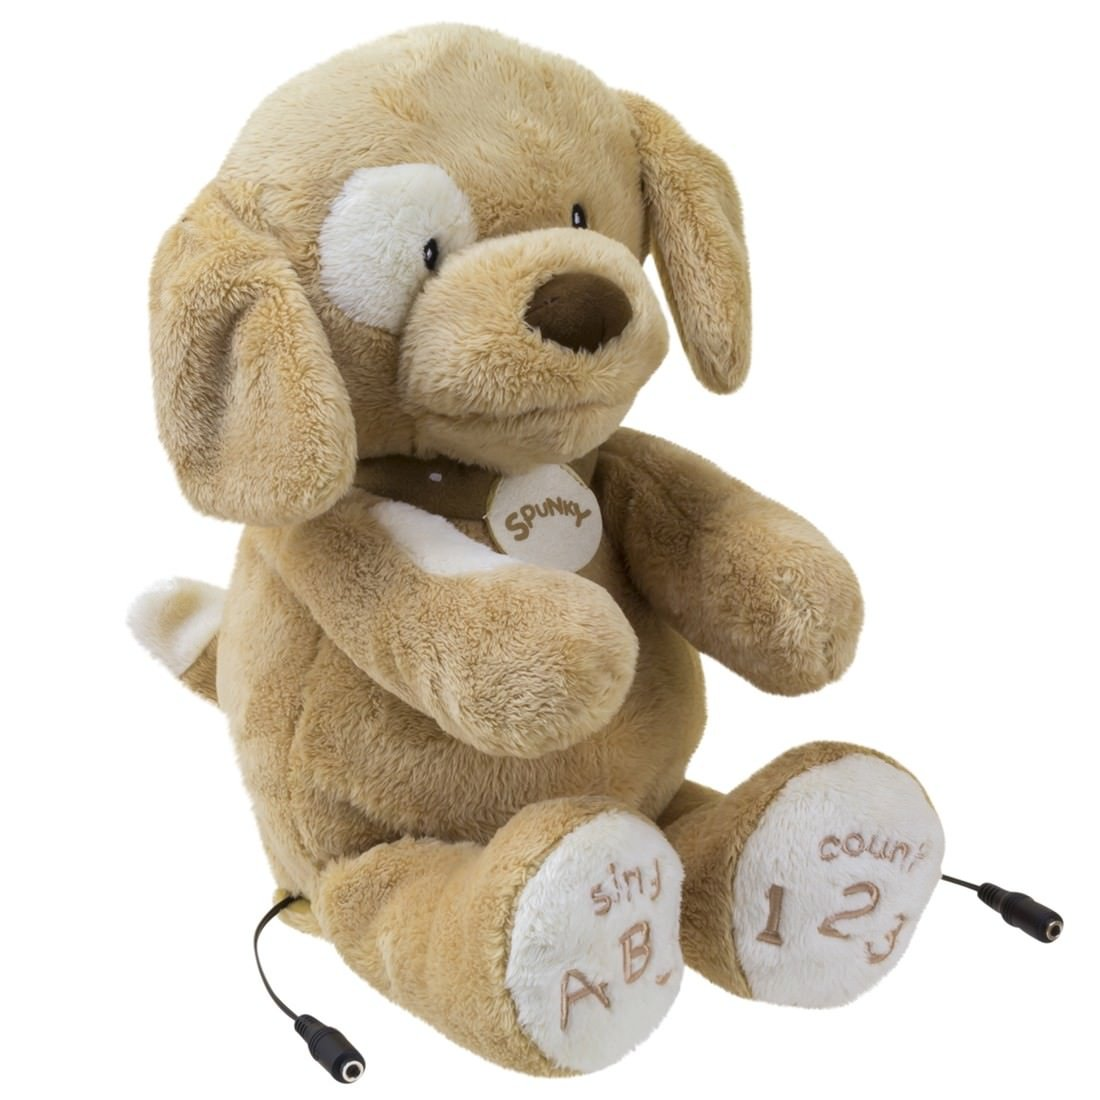 Switch Adapted Toy ABC 123 Spunky The Dog by AbleNet 30000034 by Ablenet (Image #1)